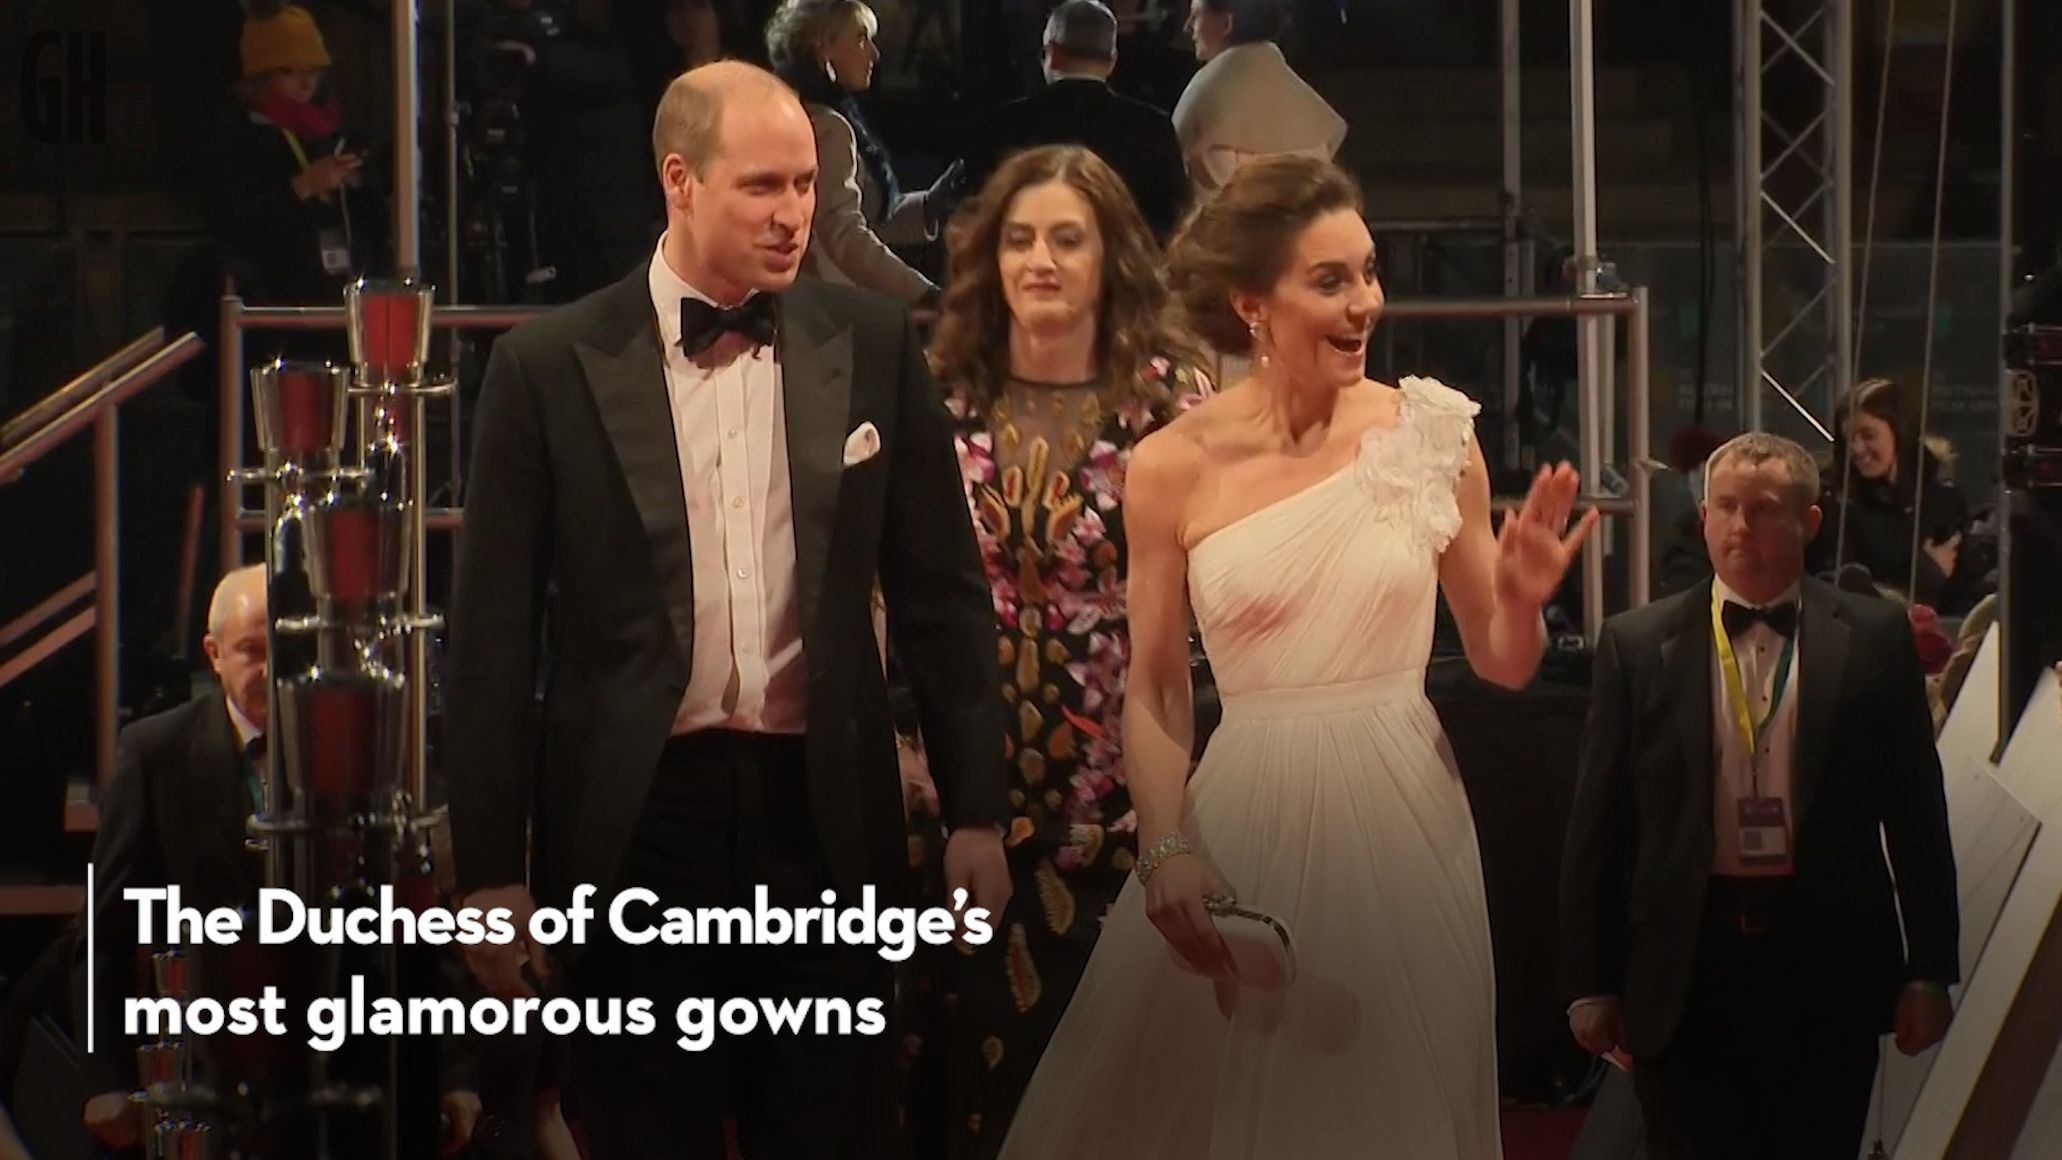 Kate Middleton celebrated her 38th birthday at the weekend